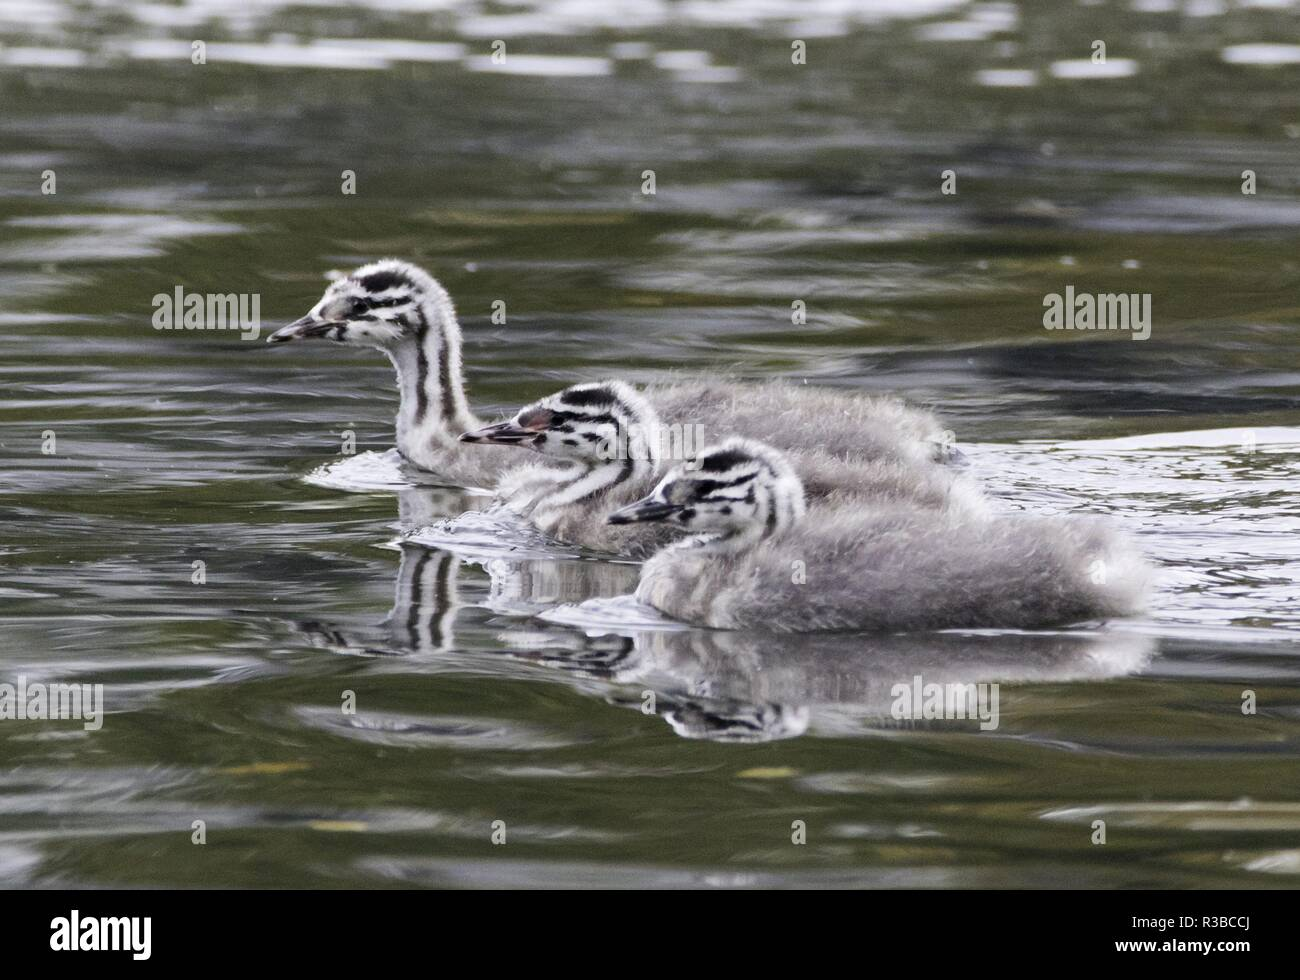 three juvenile Great Crested Grebes, october 2018 | usage worldwide - Stock Image